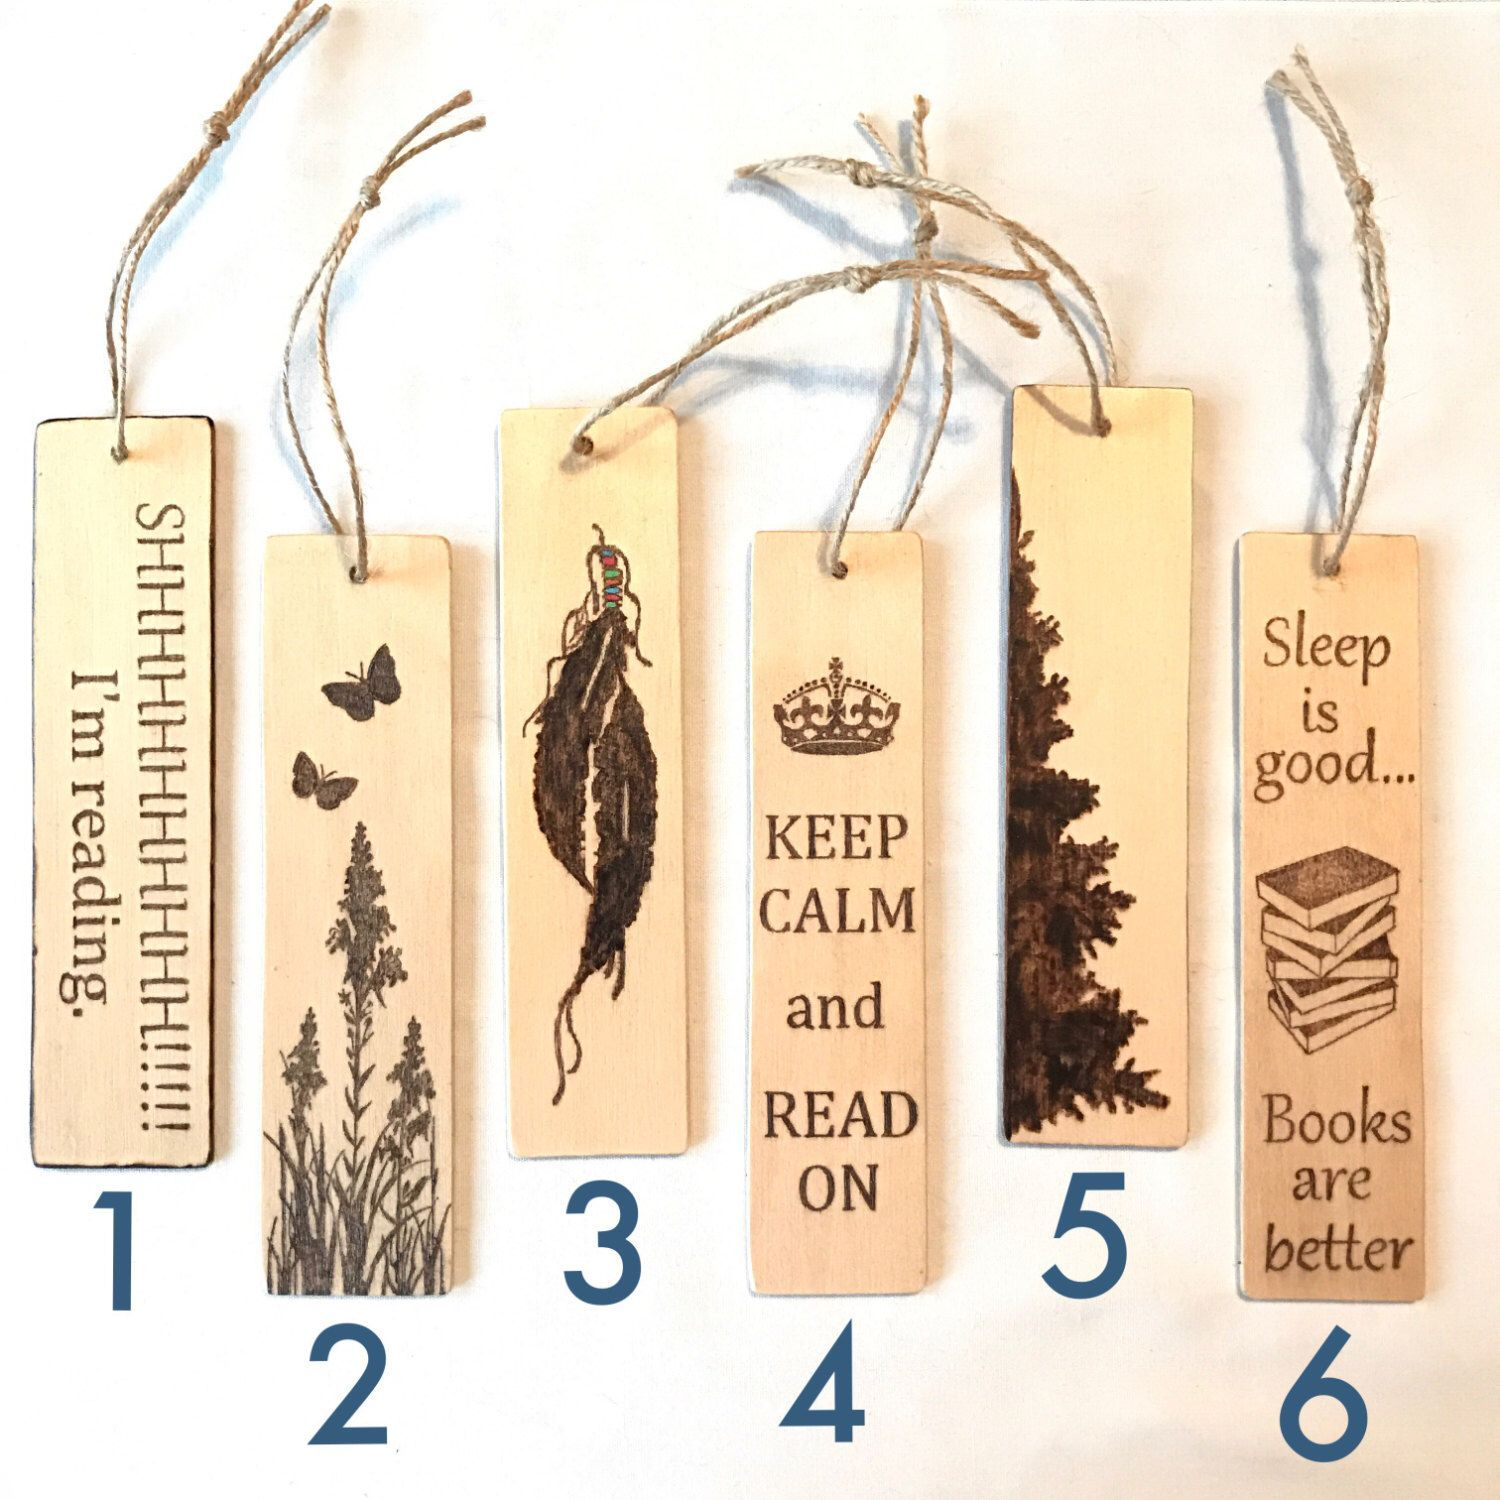 Wooden Bookmarks Custom Bookmarks Unique Bookmarks Reading Lovers Gift Book Accessories Bookmark Favo Custom Bookmarks Book Accessories Bookmarks Handmade